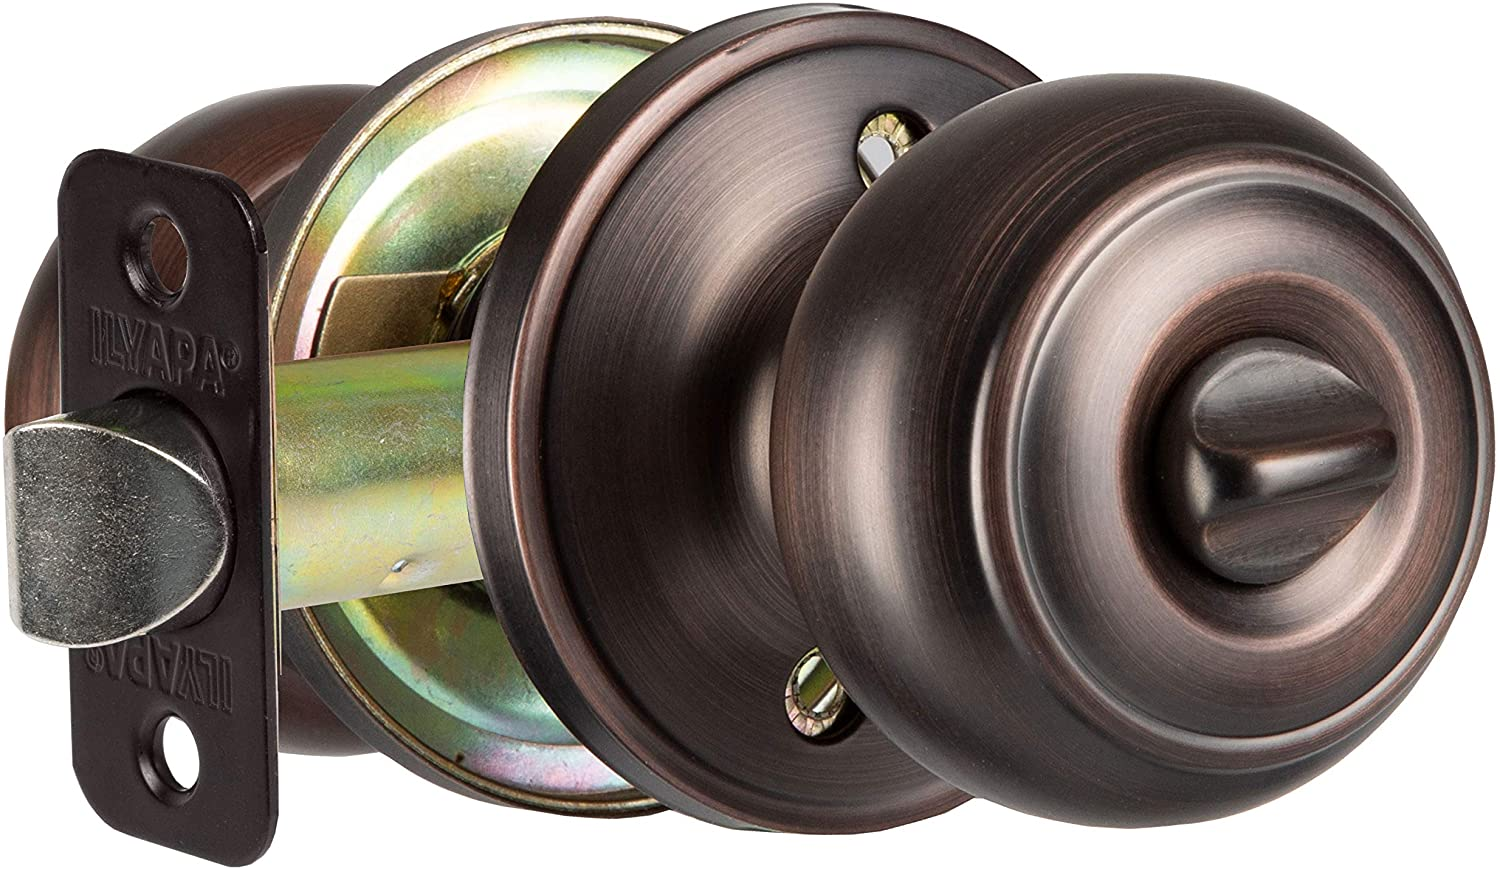 Interior Privacy Door Knob - Keyless Locking Door Handles for Bedroom or Bathroom - Oil Rubbed Bronze Finish